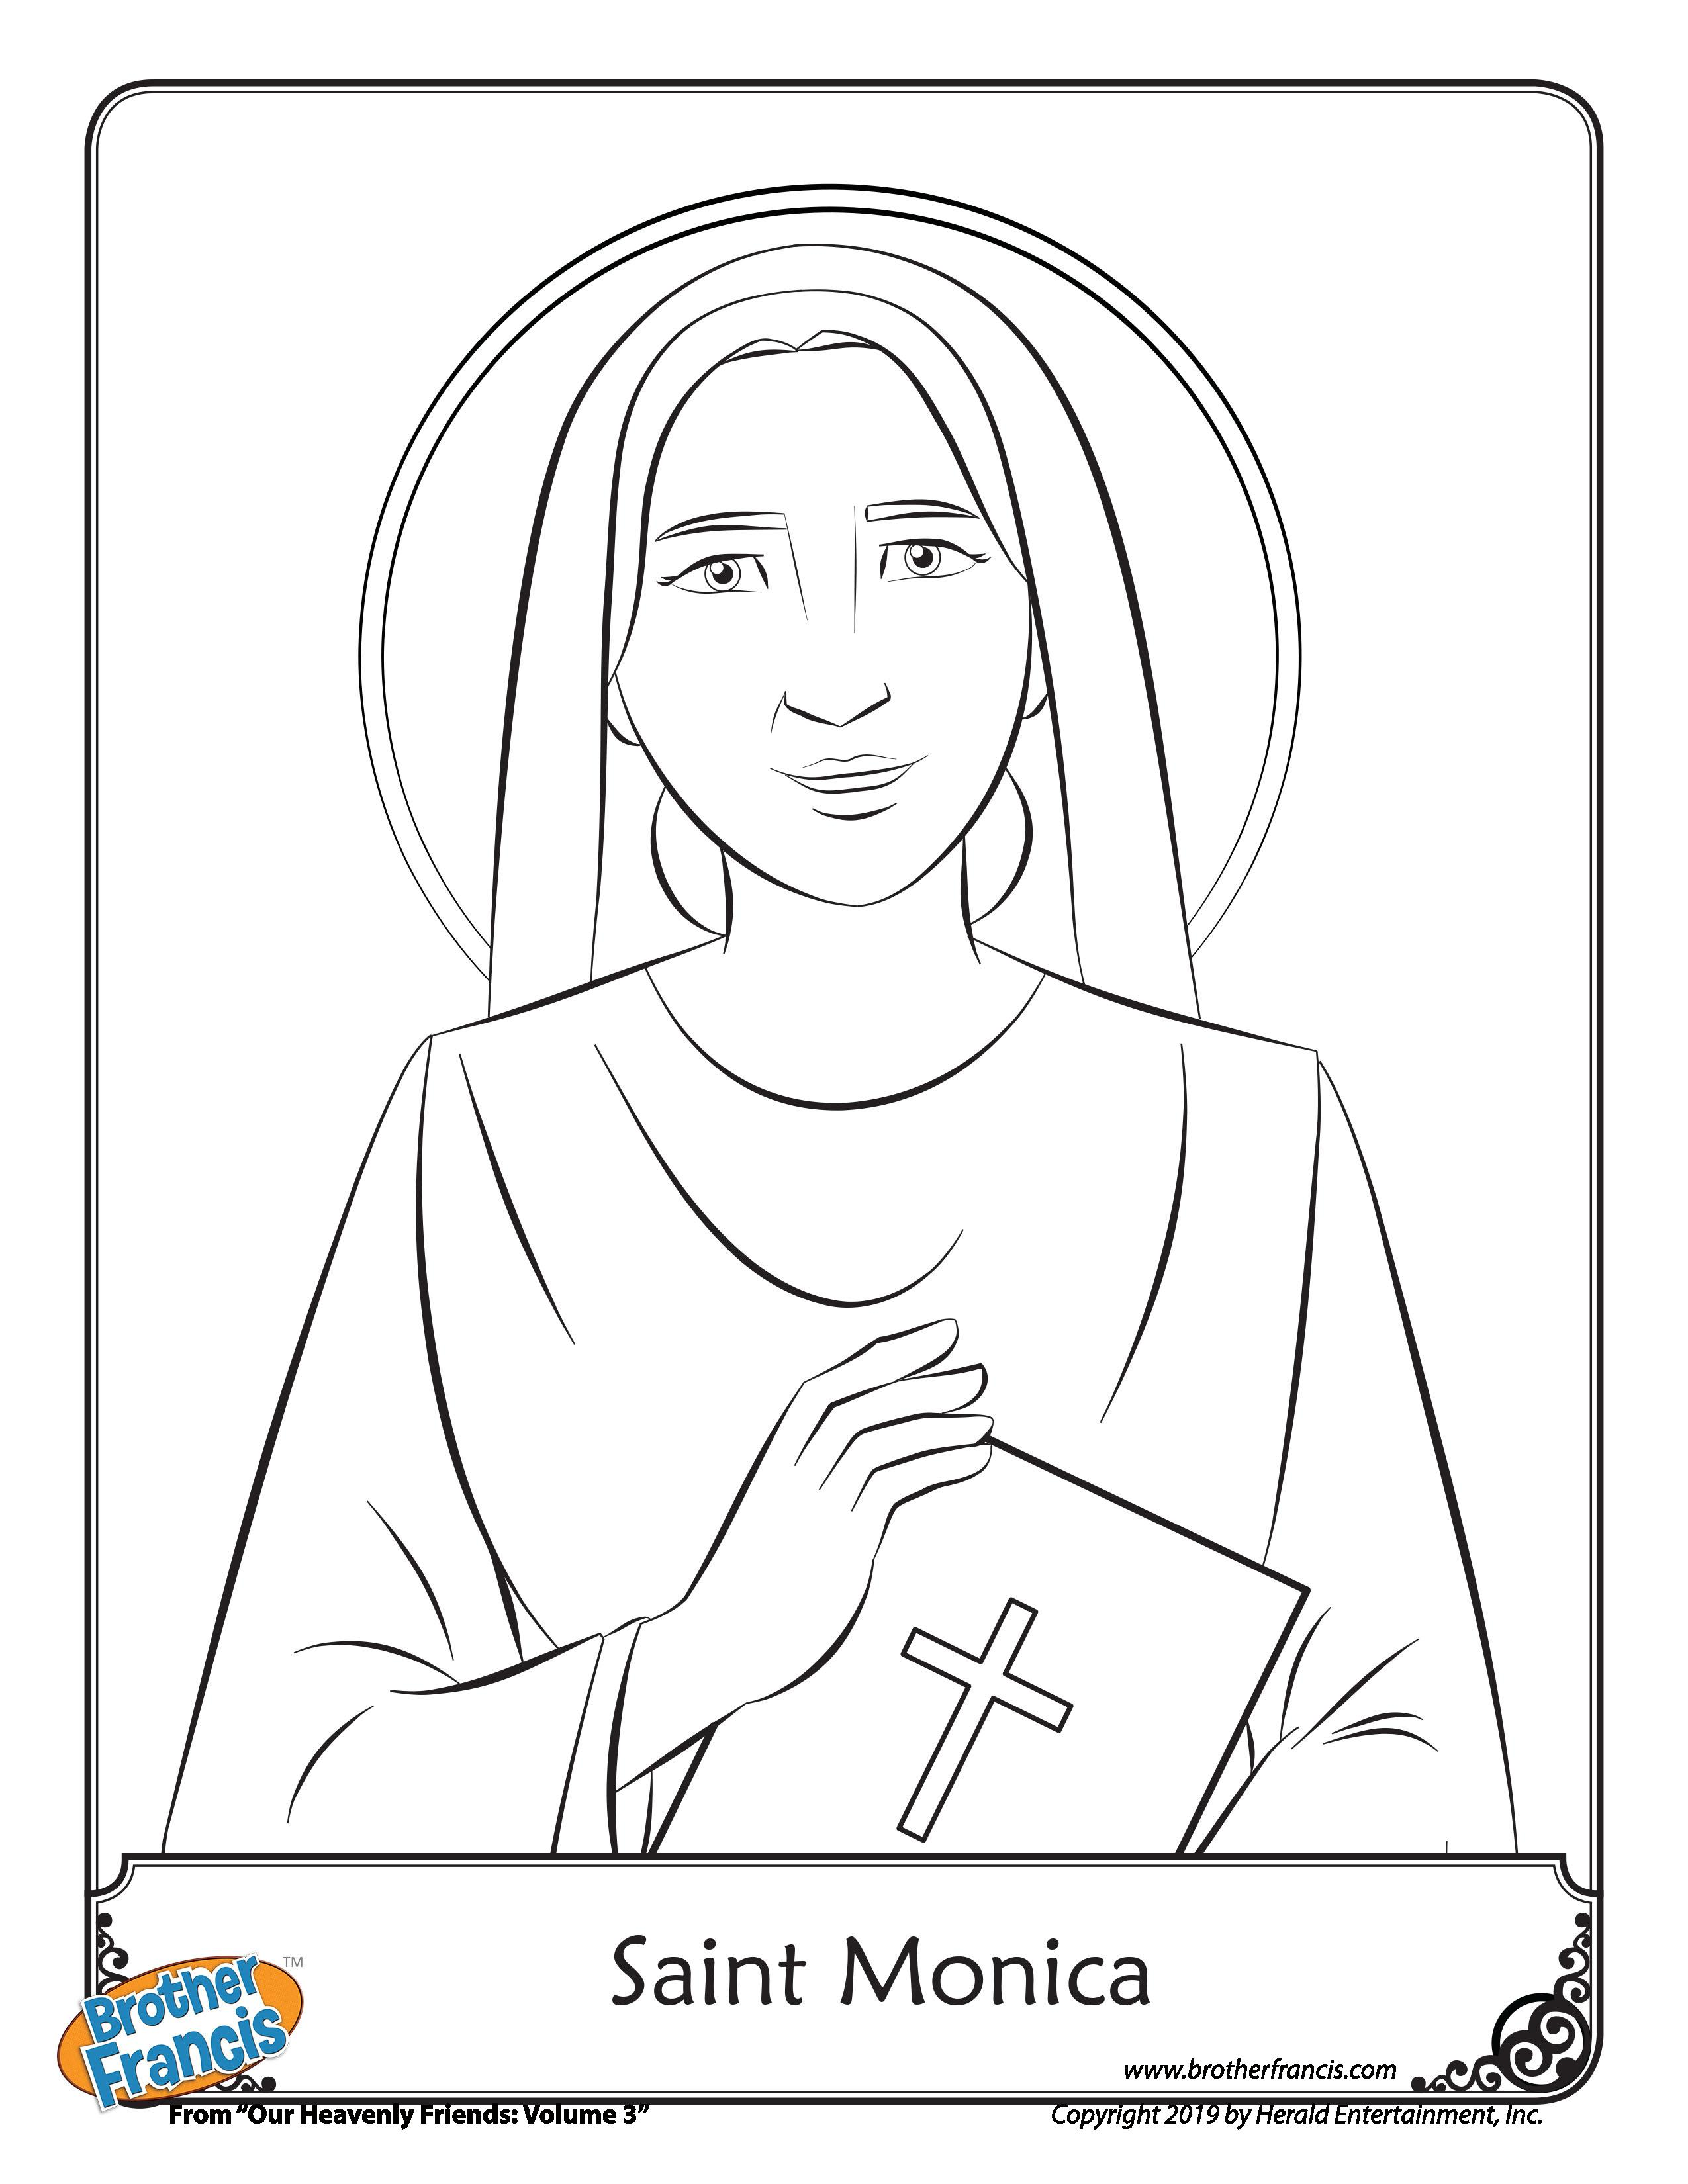 Colouring Page_saint-monica-coloring-page-brother-francis-page-001